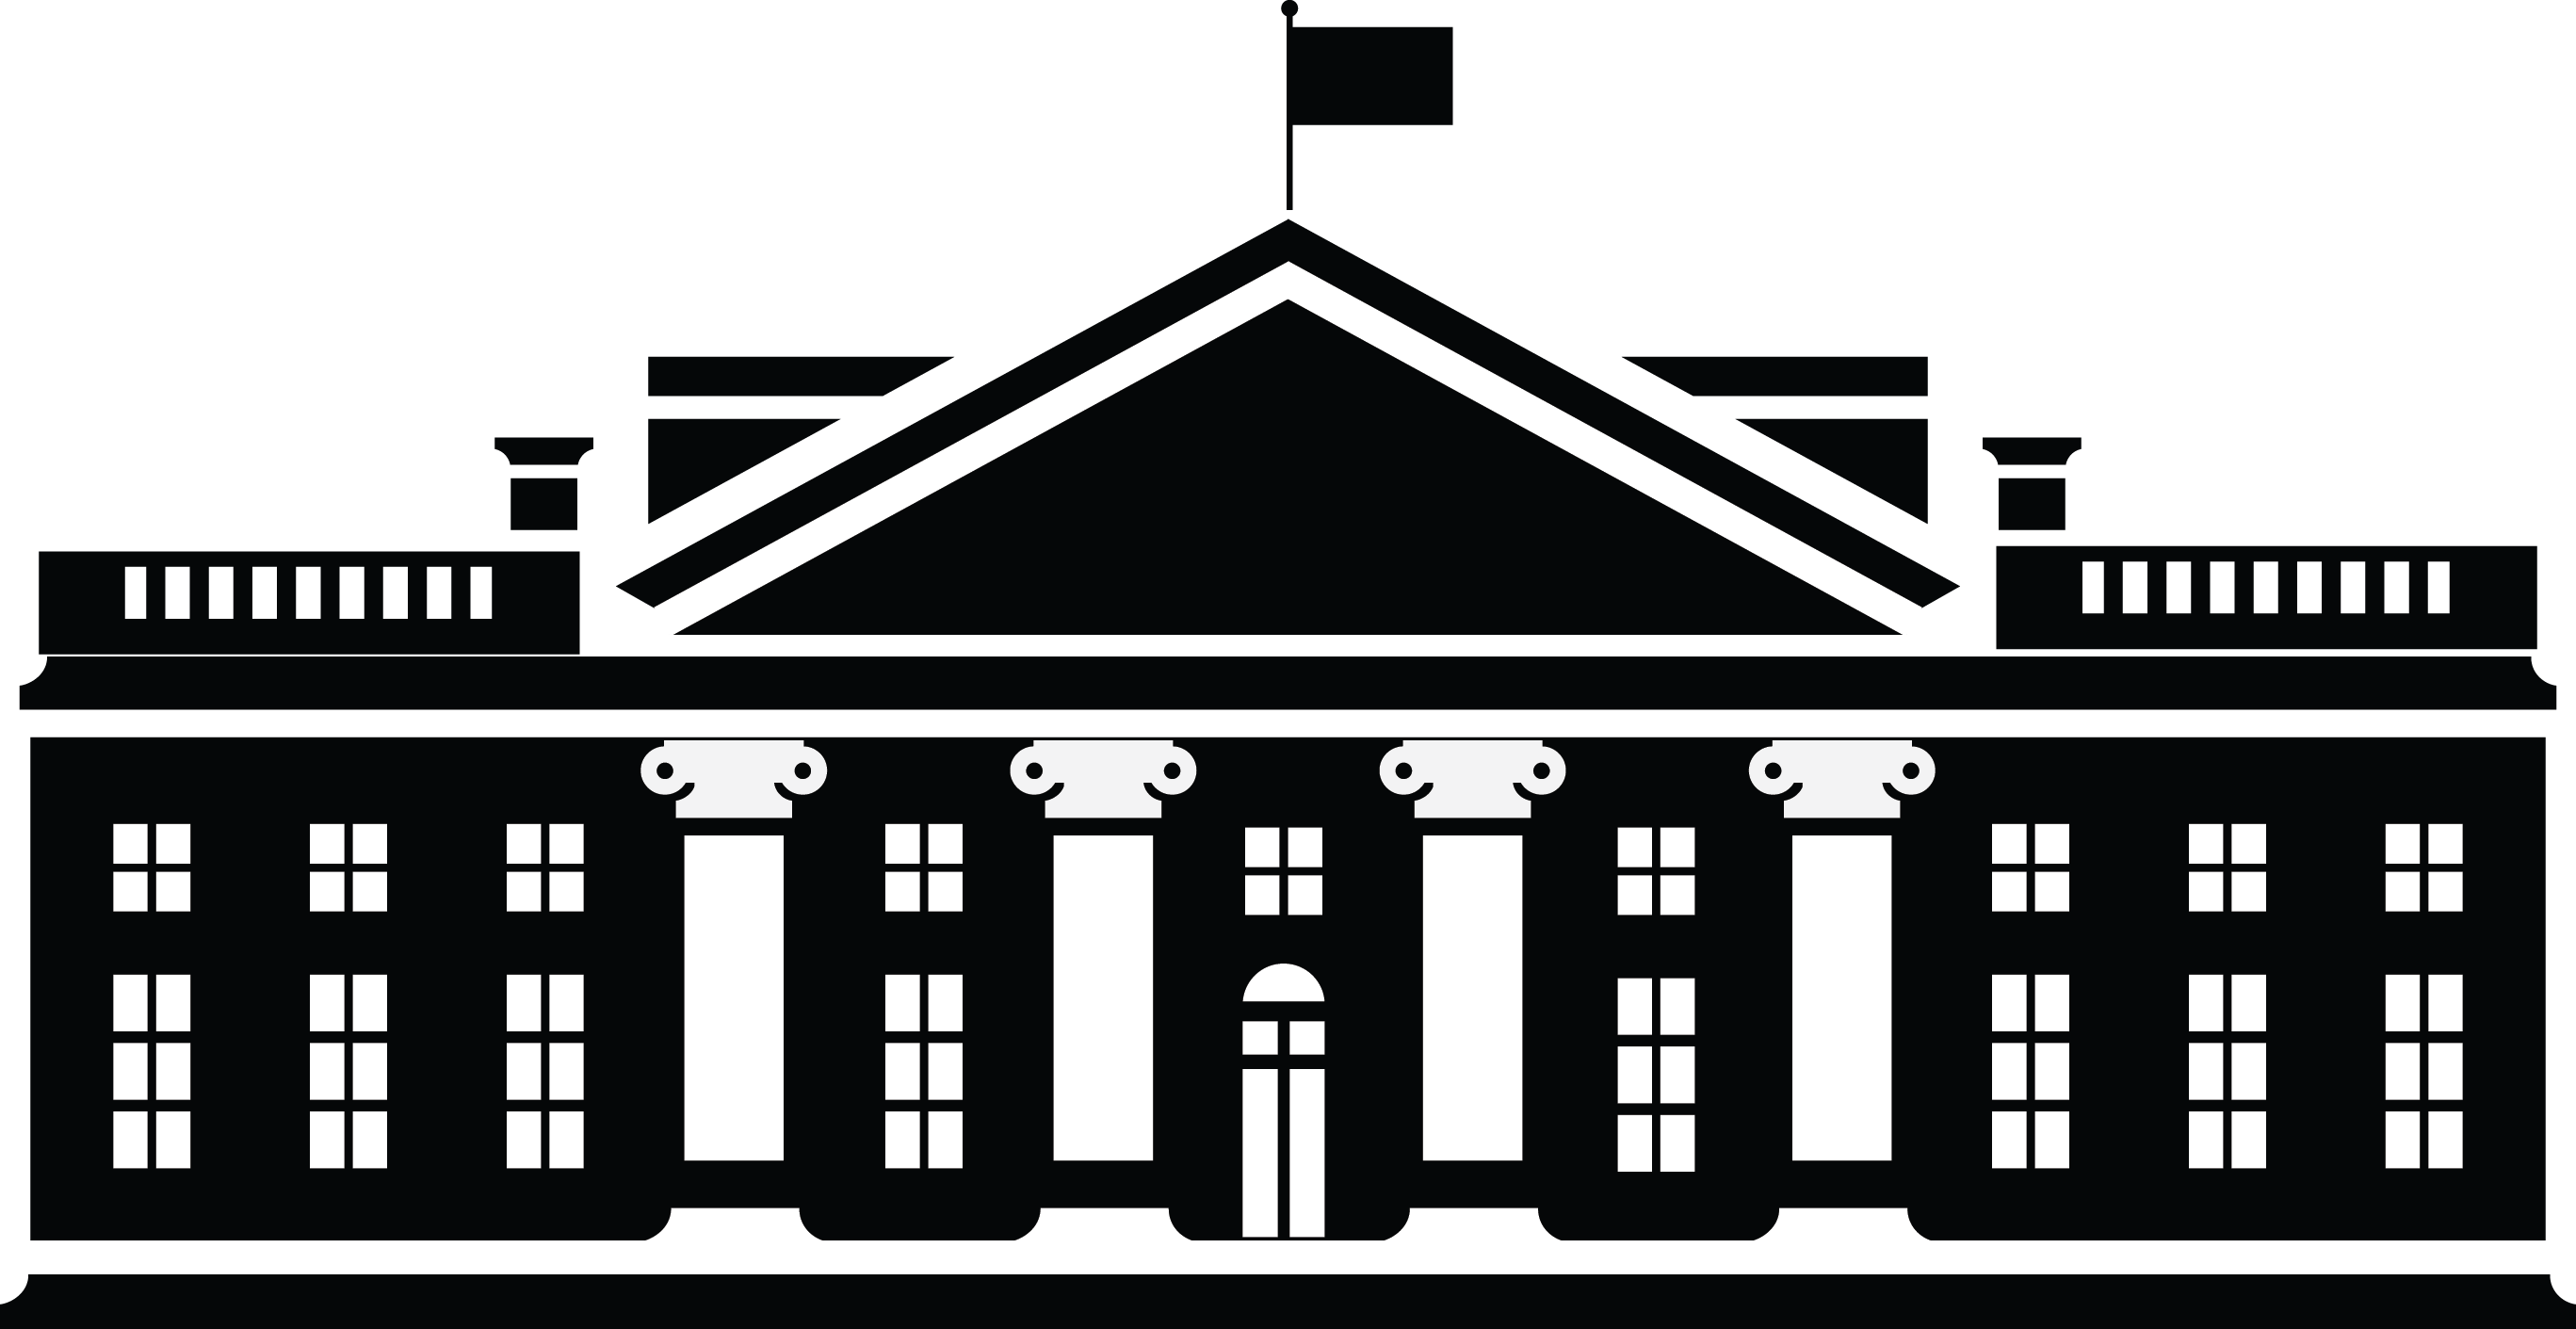 White house png. Transparent background mart